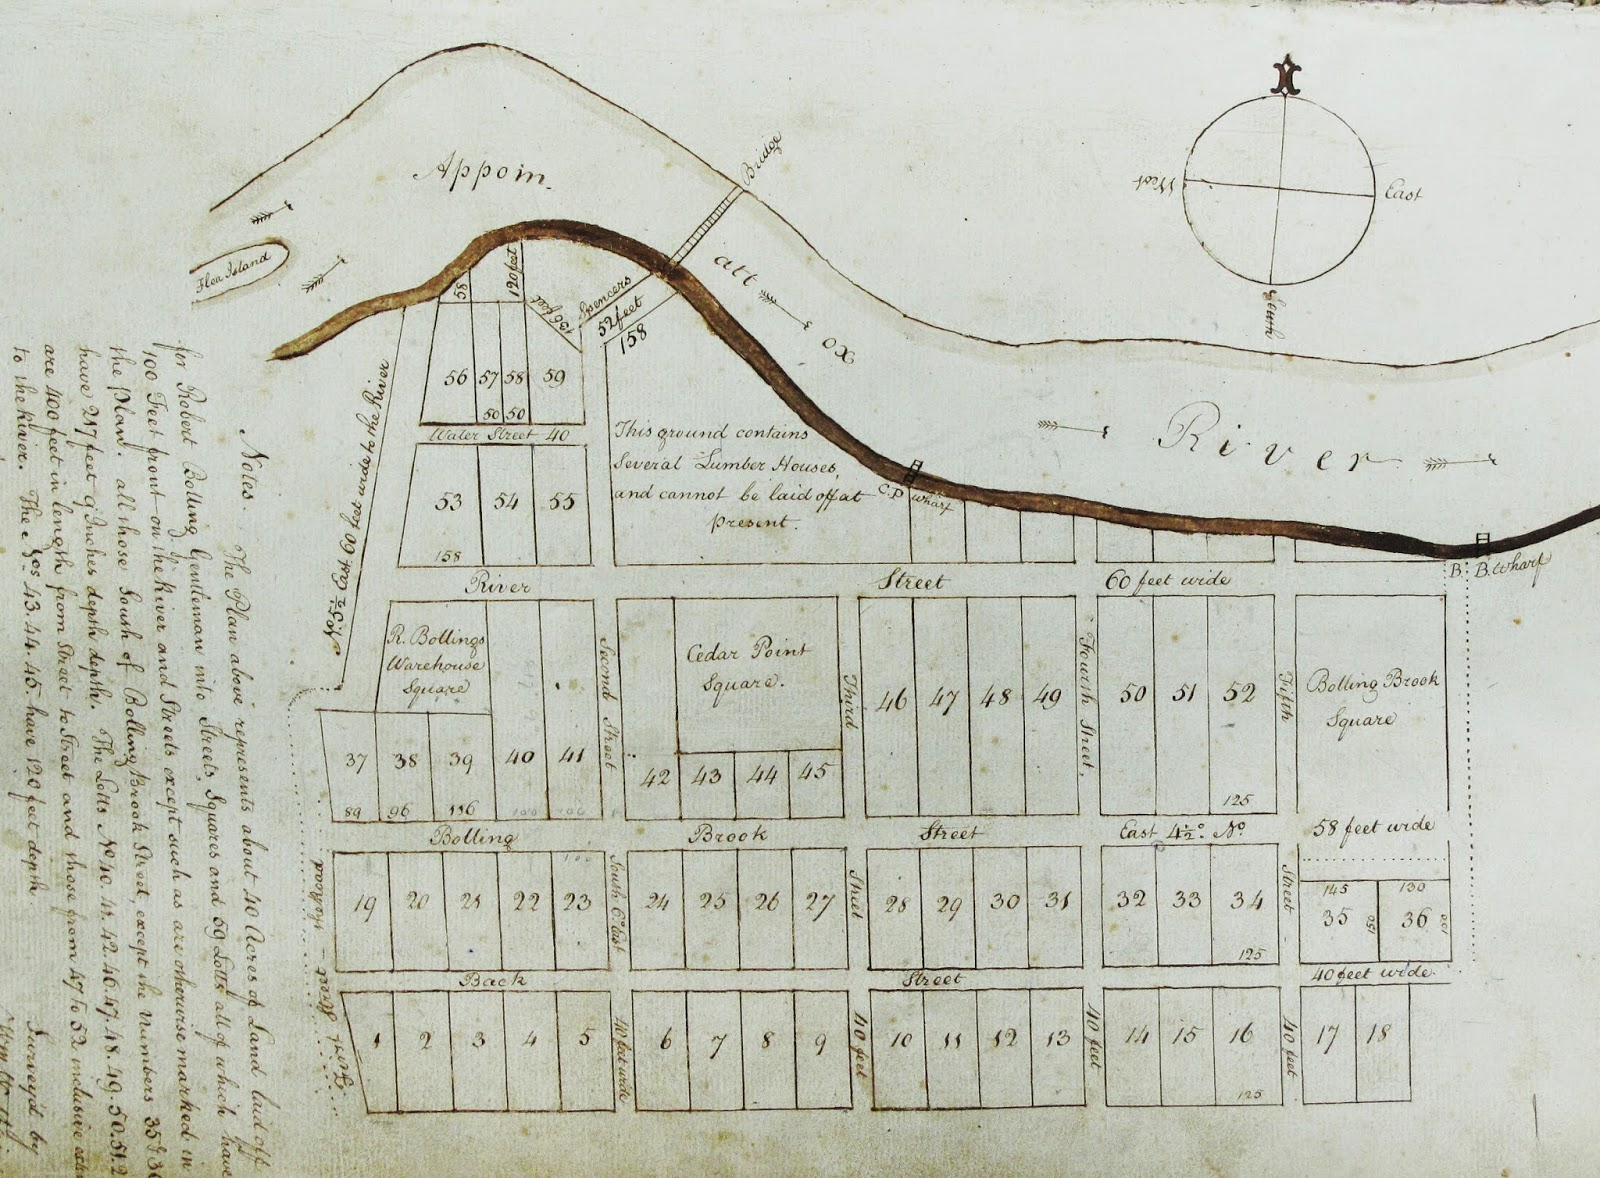 copy of the plat of new blandford before 1784 from the city of petersburg clerk s office